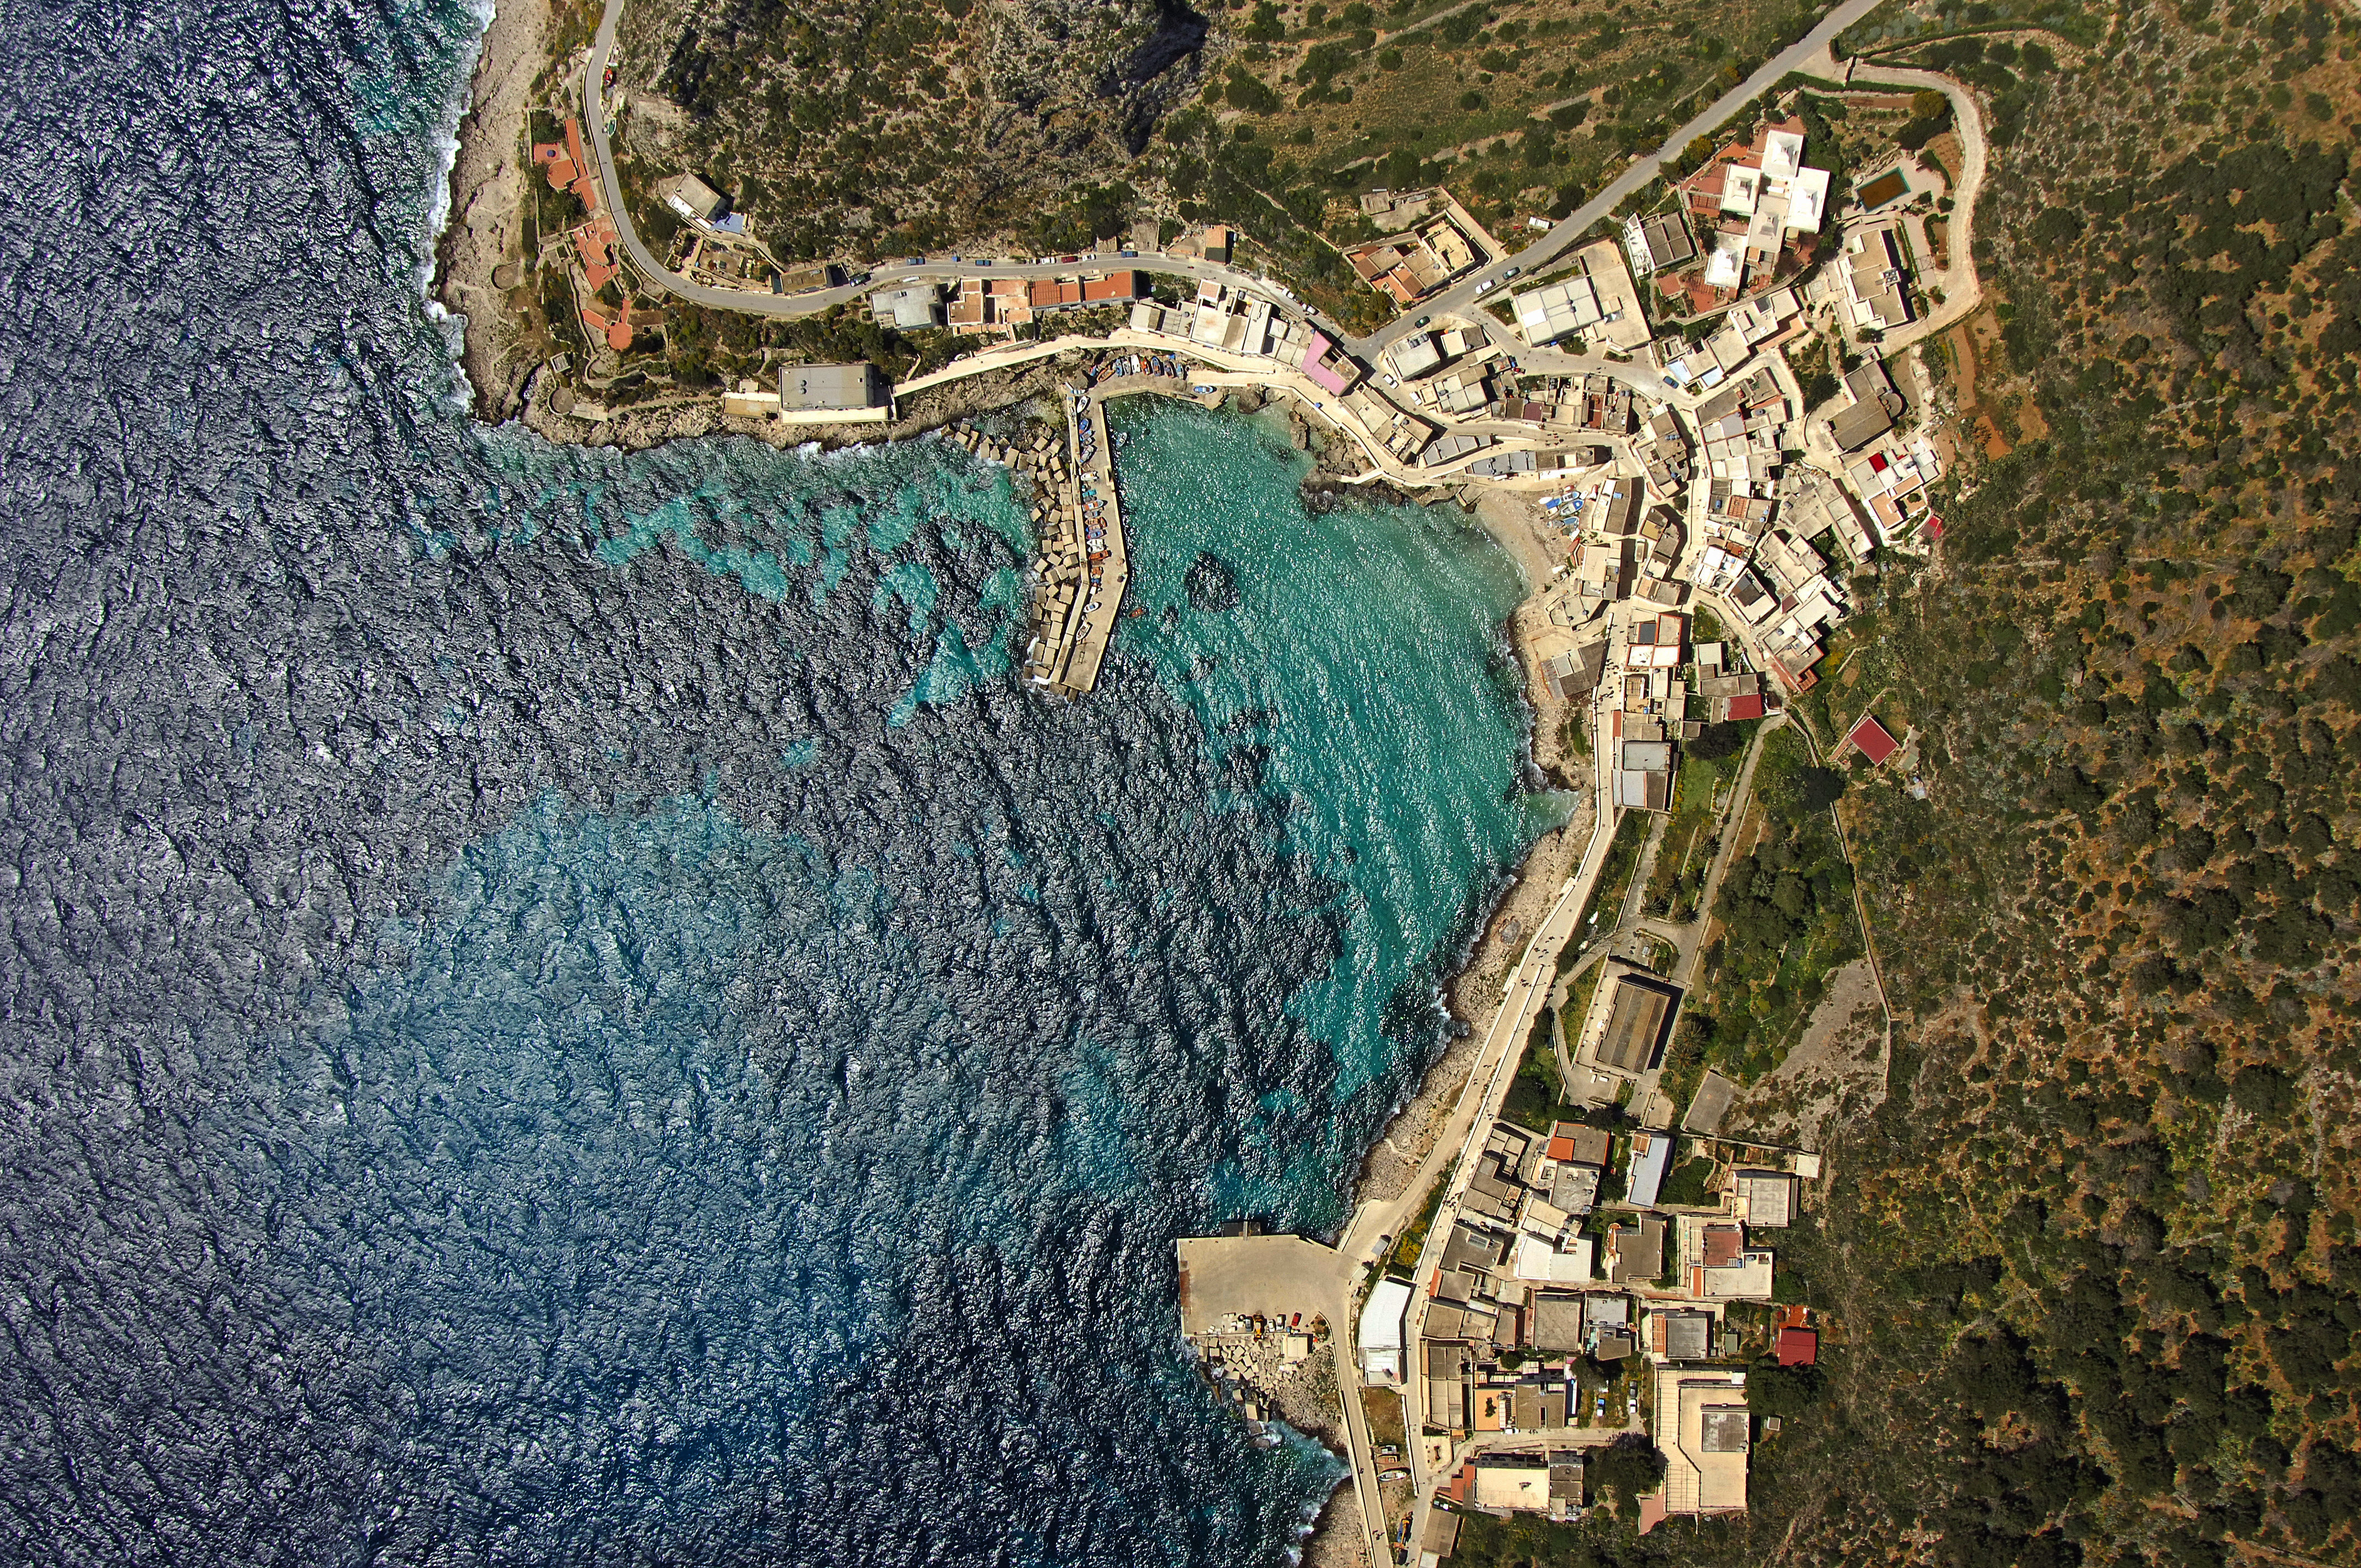 Cala Dogana Marina in Levanzo Sicily Italy Marina Reviews